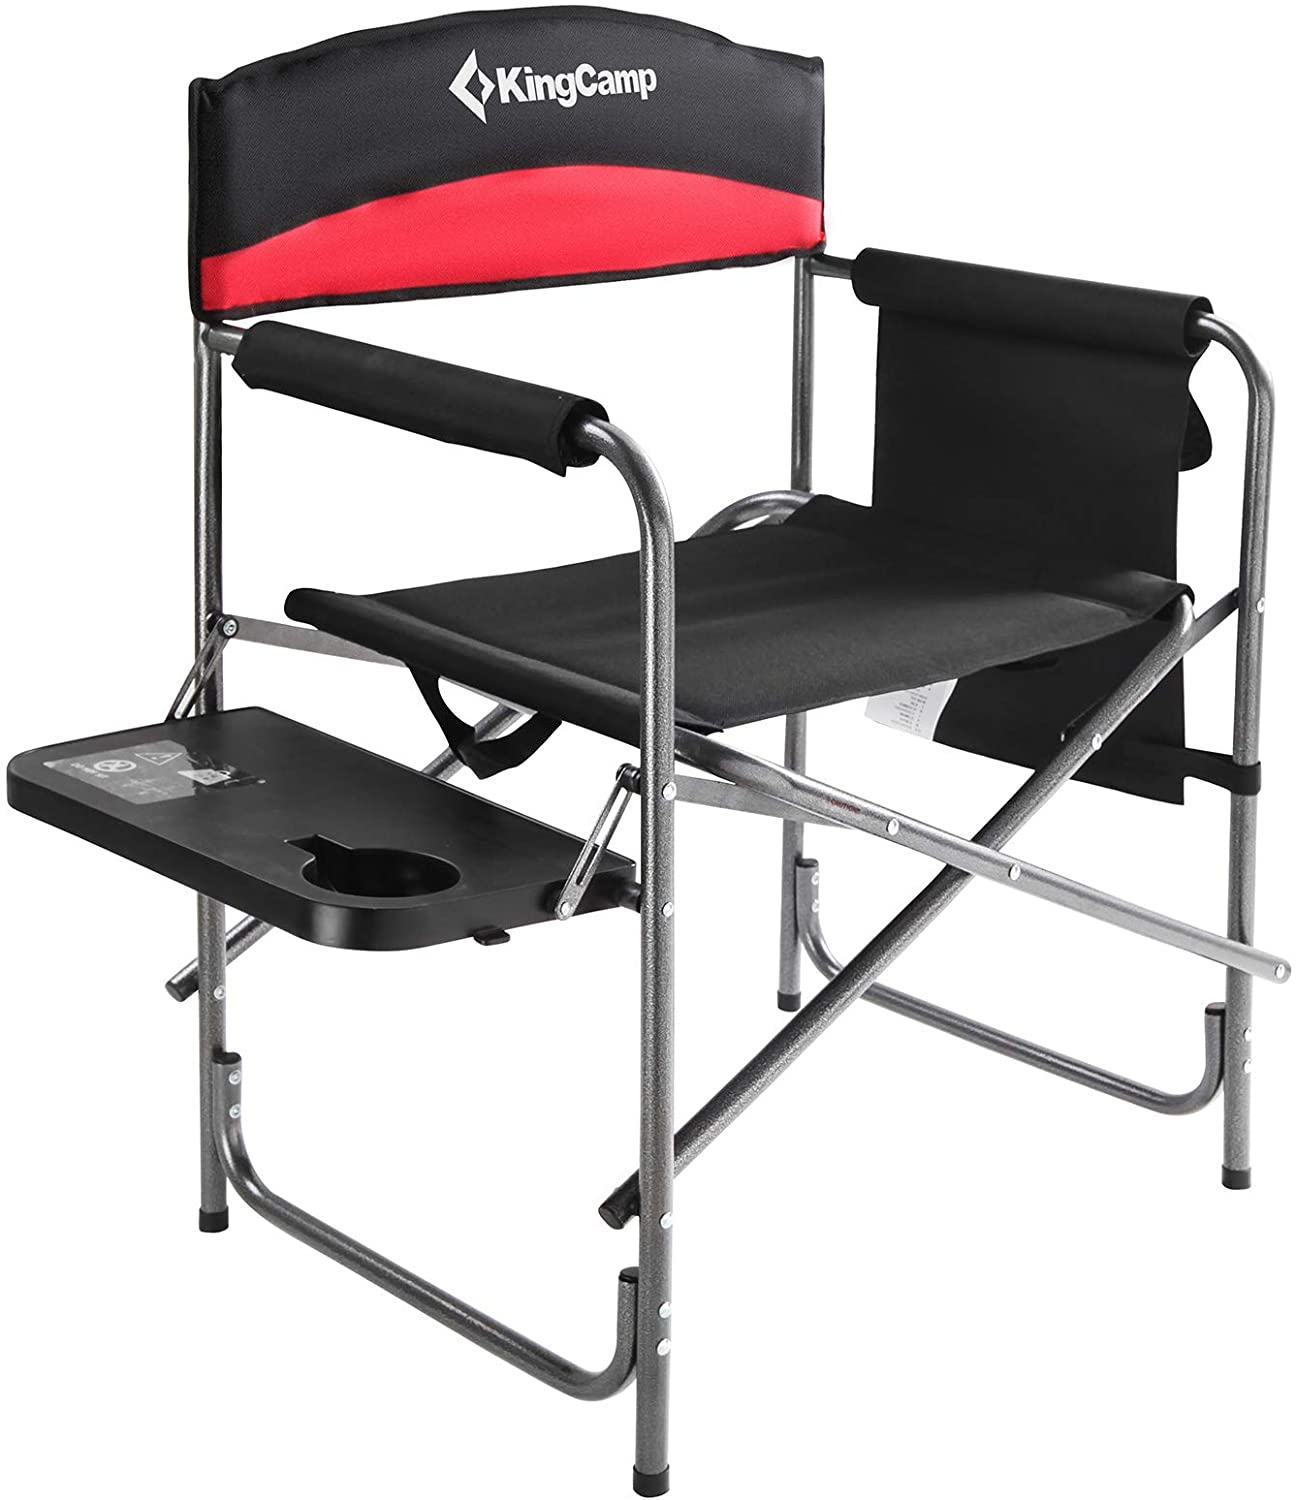 KingCamp Heavy Duty Camping Folding Director Chair: A Folding Chair Fit For a King review